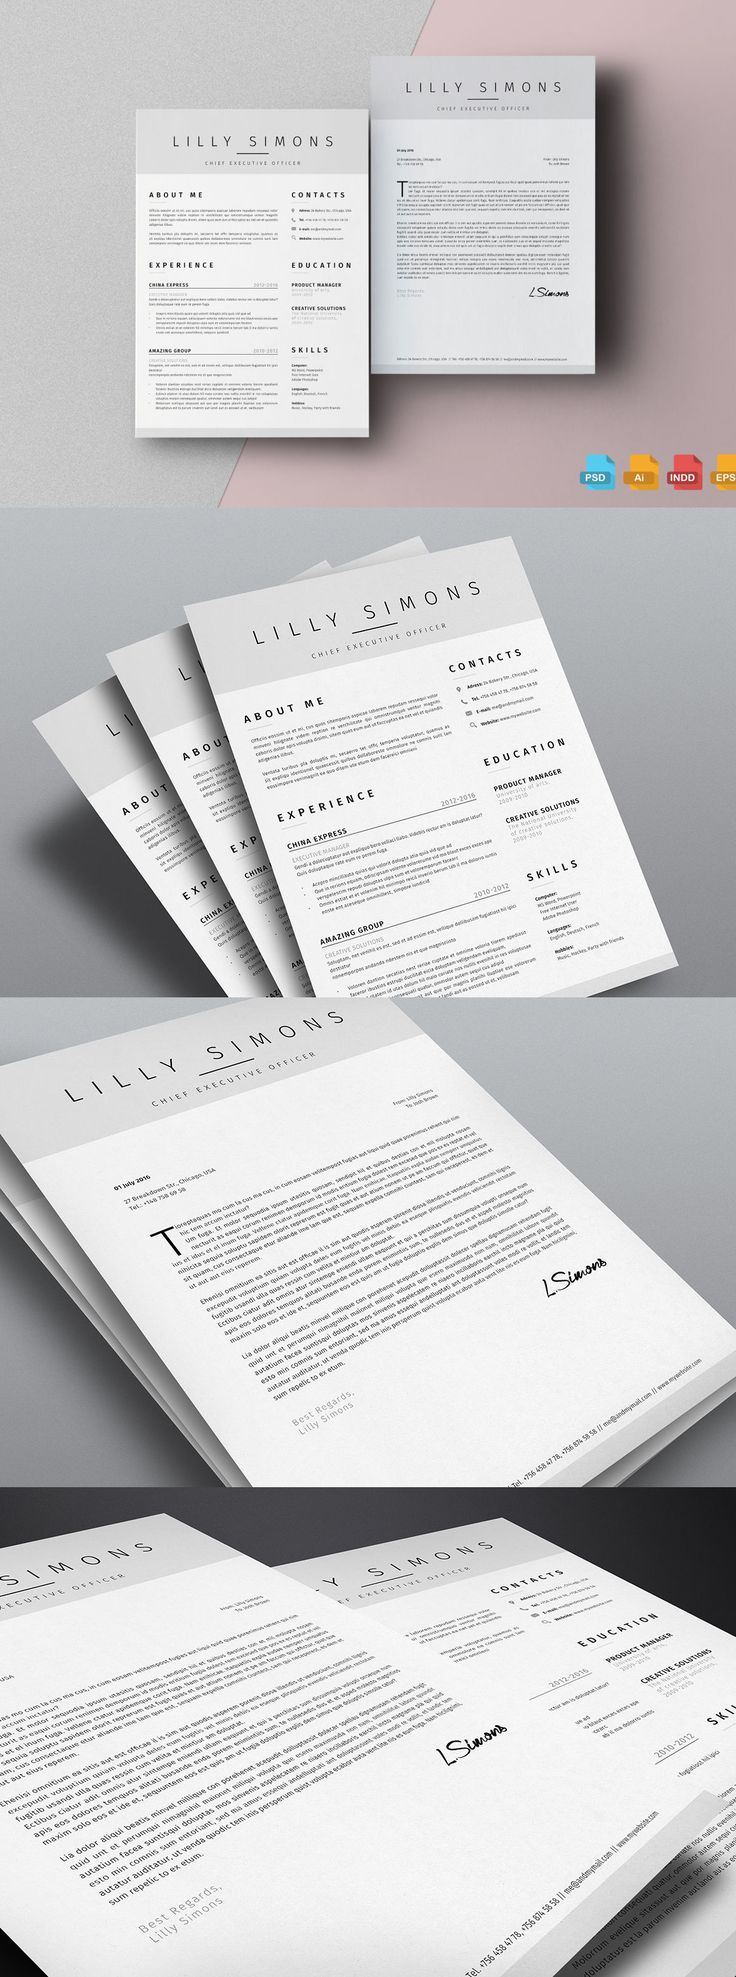 Rutgers Resume Builder Excel The  Best Images About Resume Templates On Pinterest High School Resume Template Pdf with Example Of A College Resume Pdf Clean Resume Template Ai Eps Indd Psd Resume Rabbit Reviews Excel